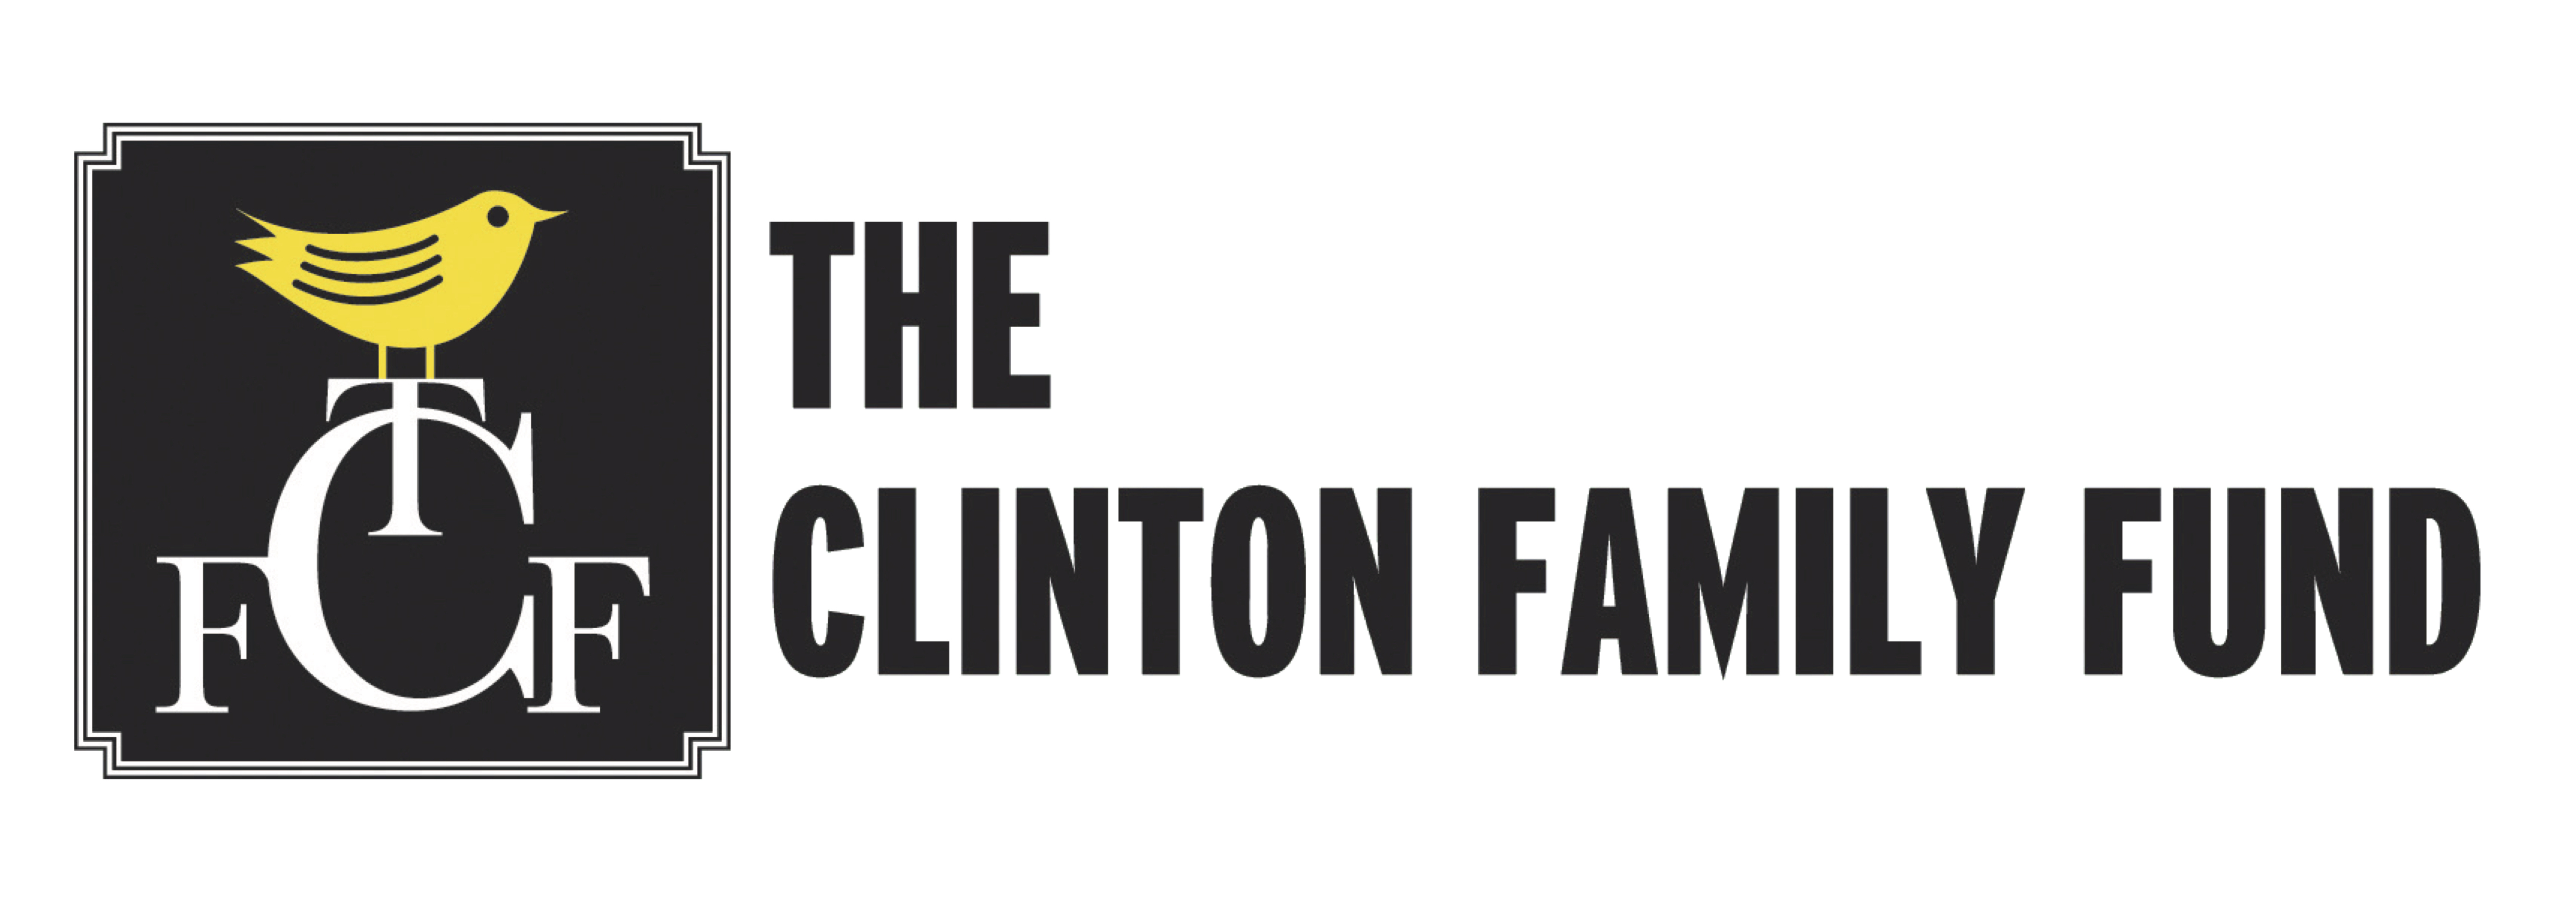 The Clinton Family Fund